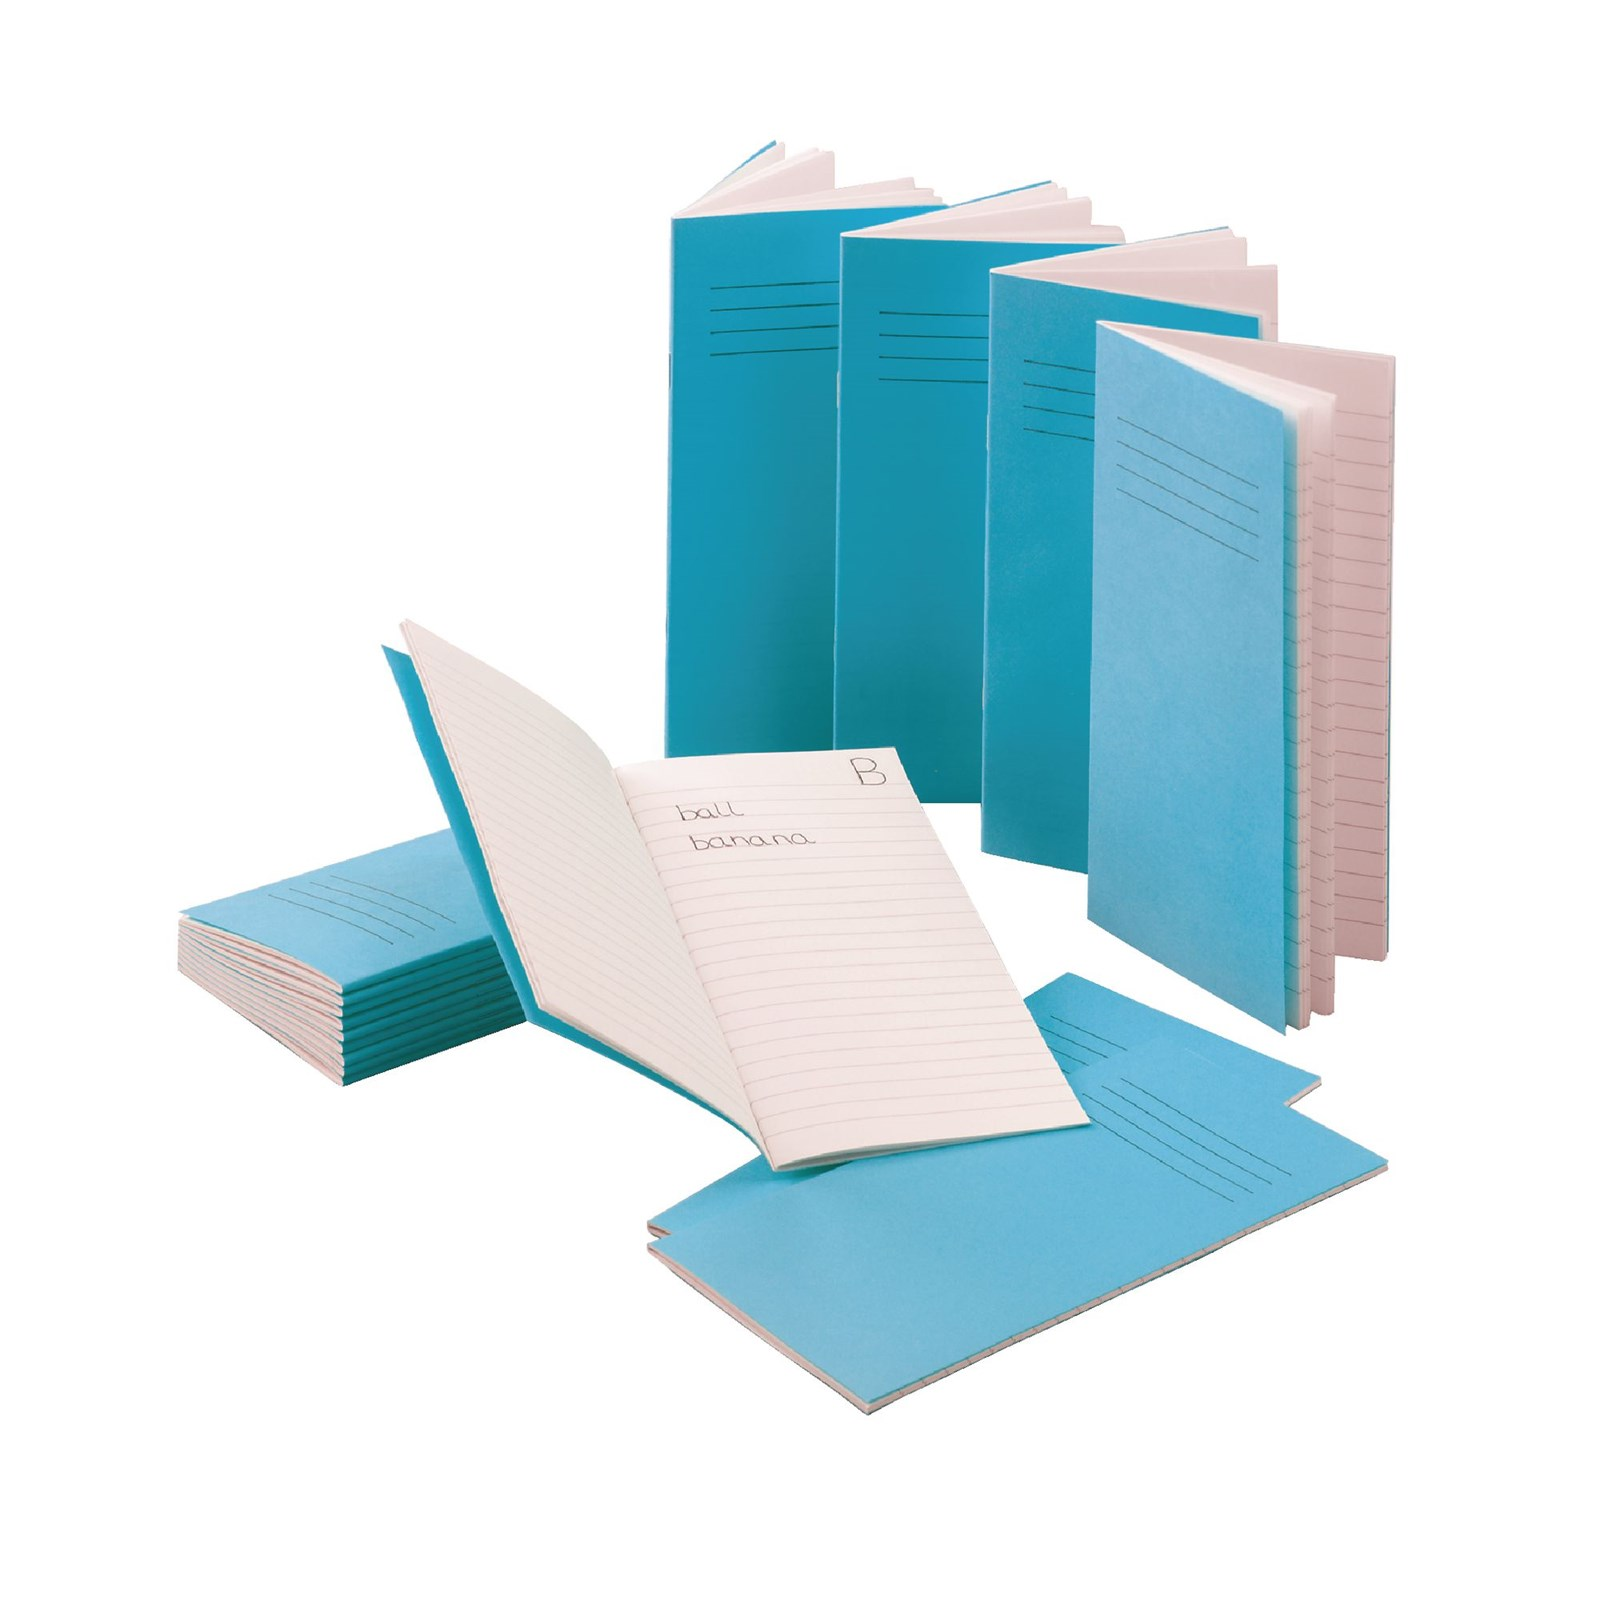 Classmates Light Blue 200 x 120mm Notebook 80-Page, 6mm Ruled - Pack of 100